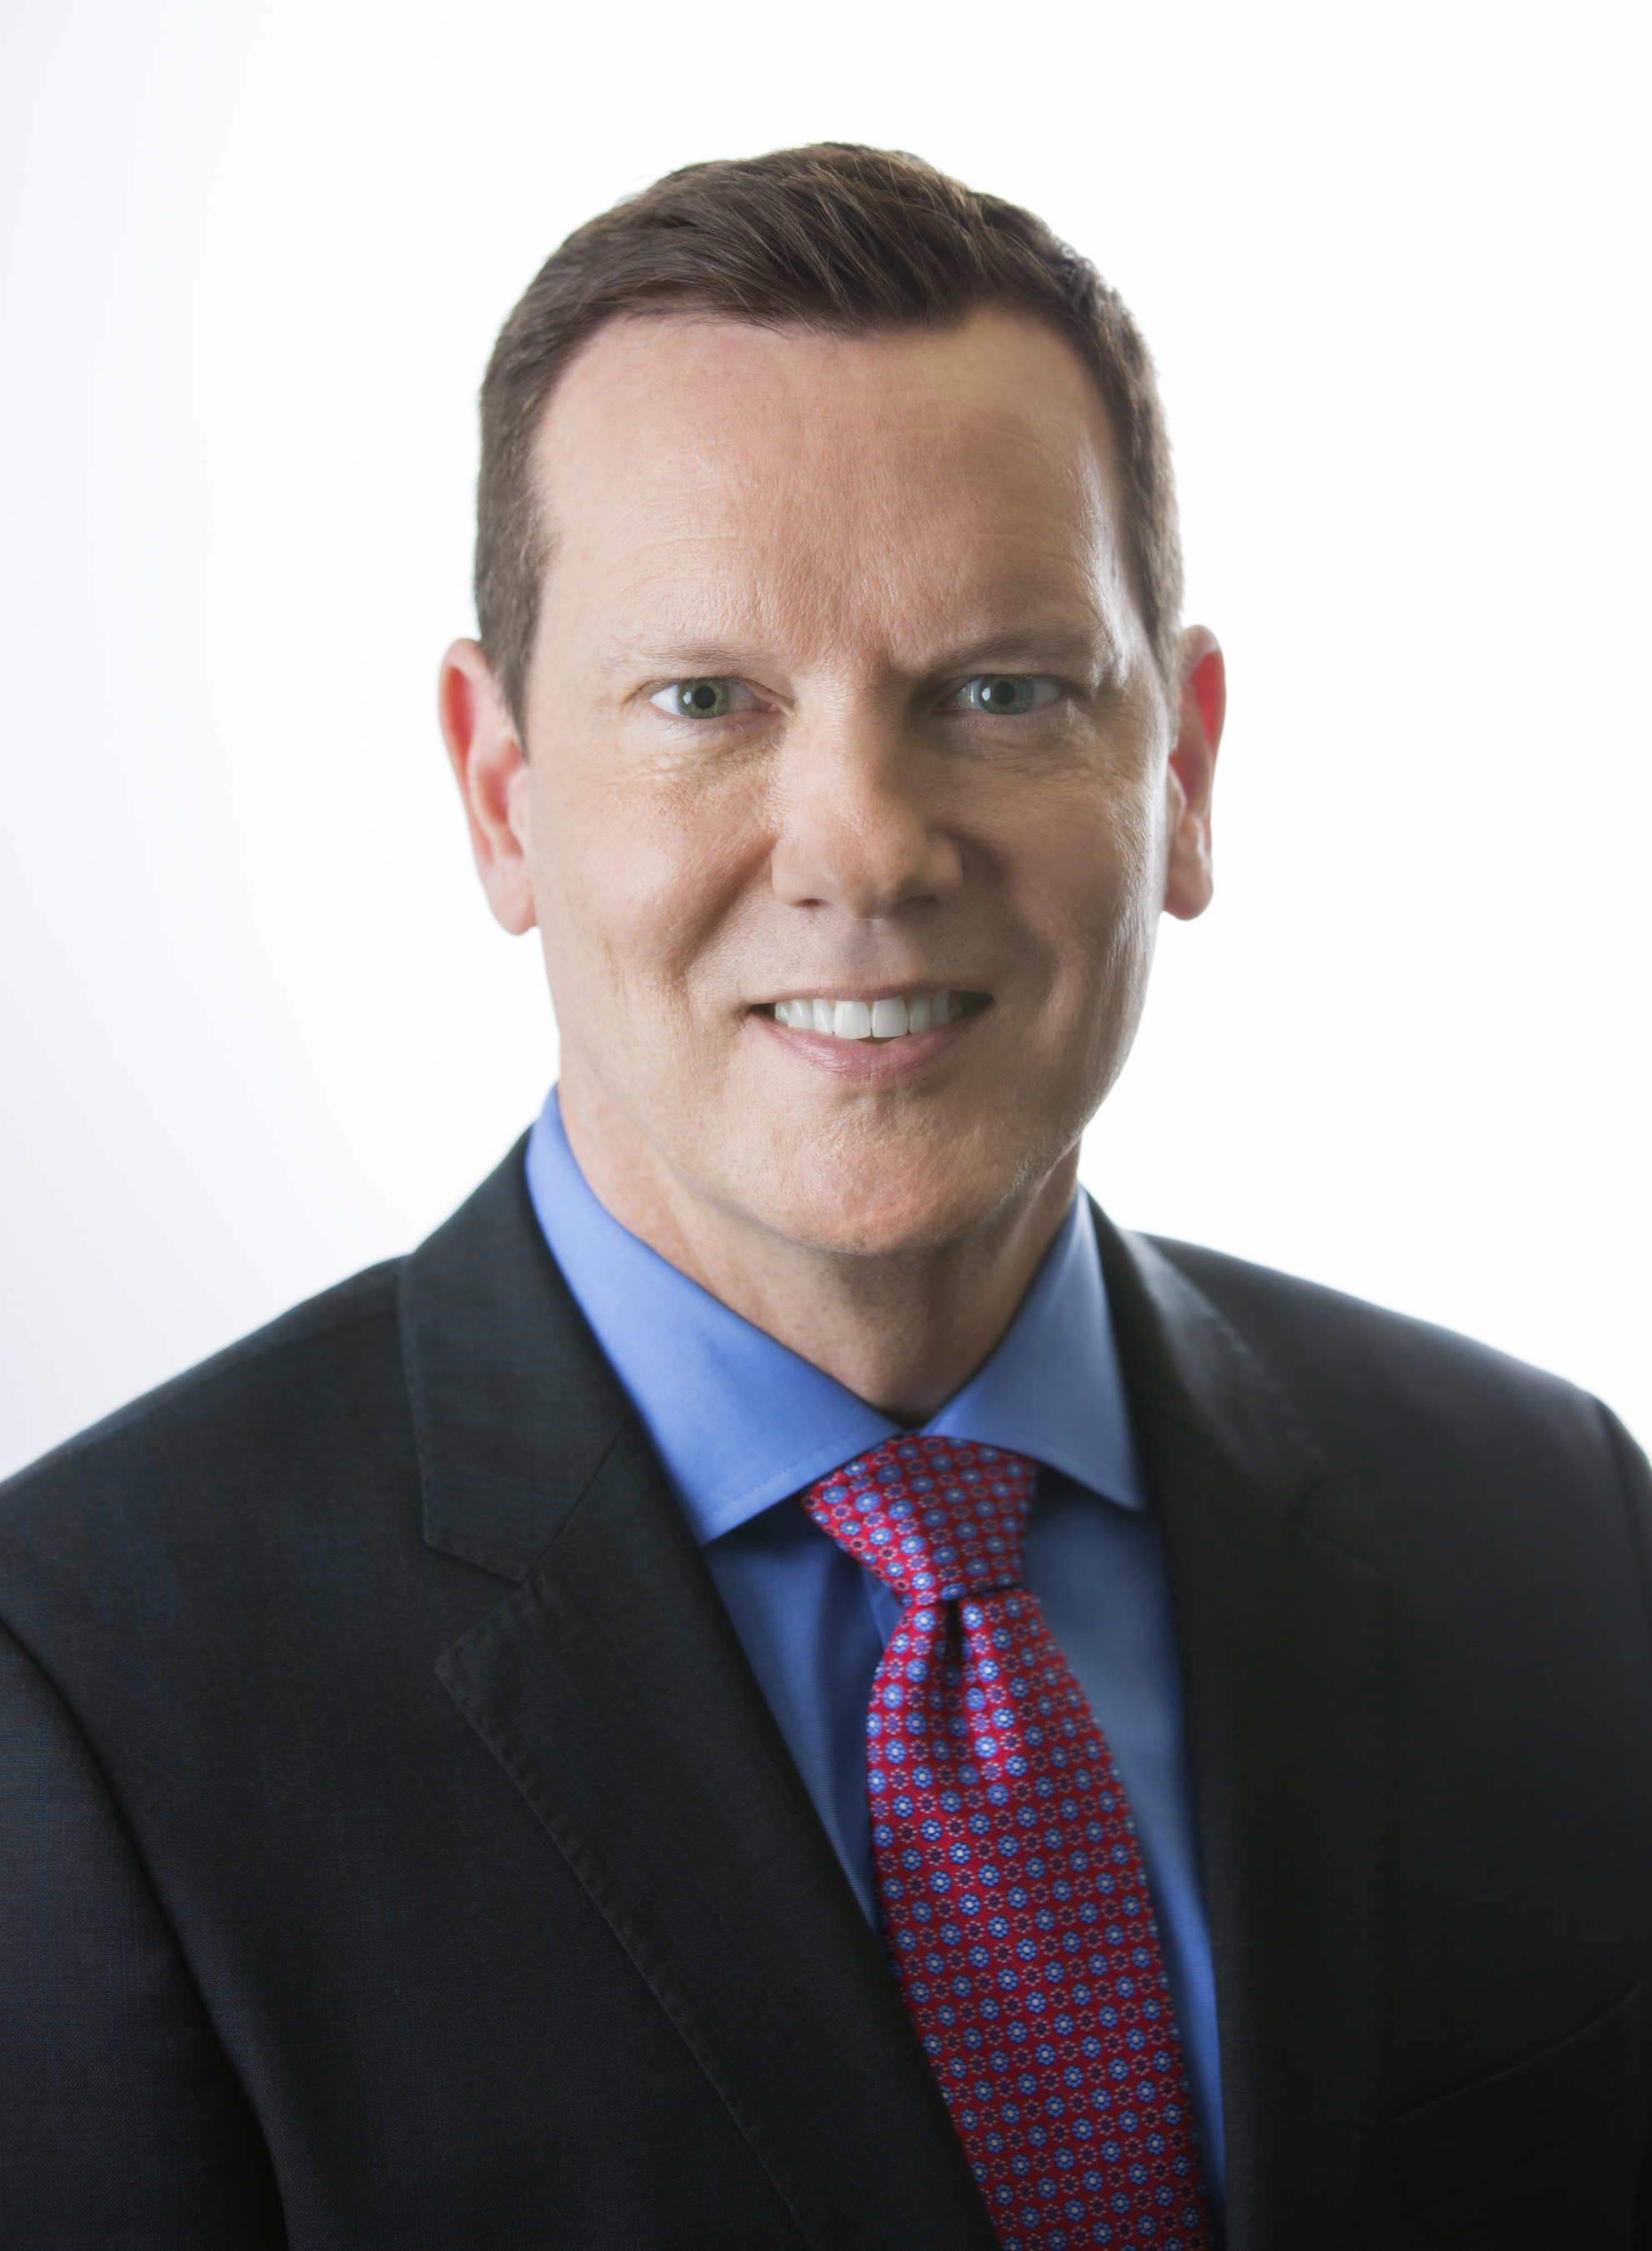 Steve Brown has been named president and CEO for accesso Technology Group, PLC